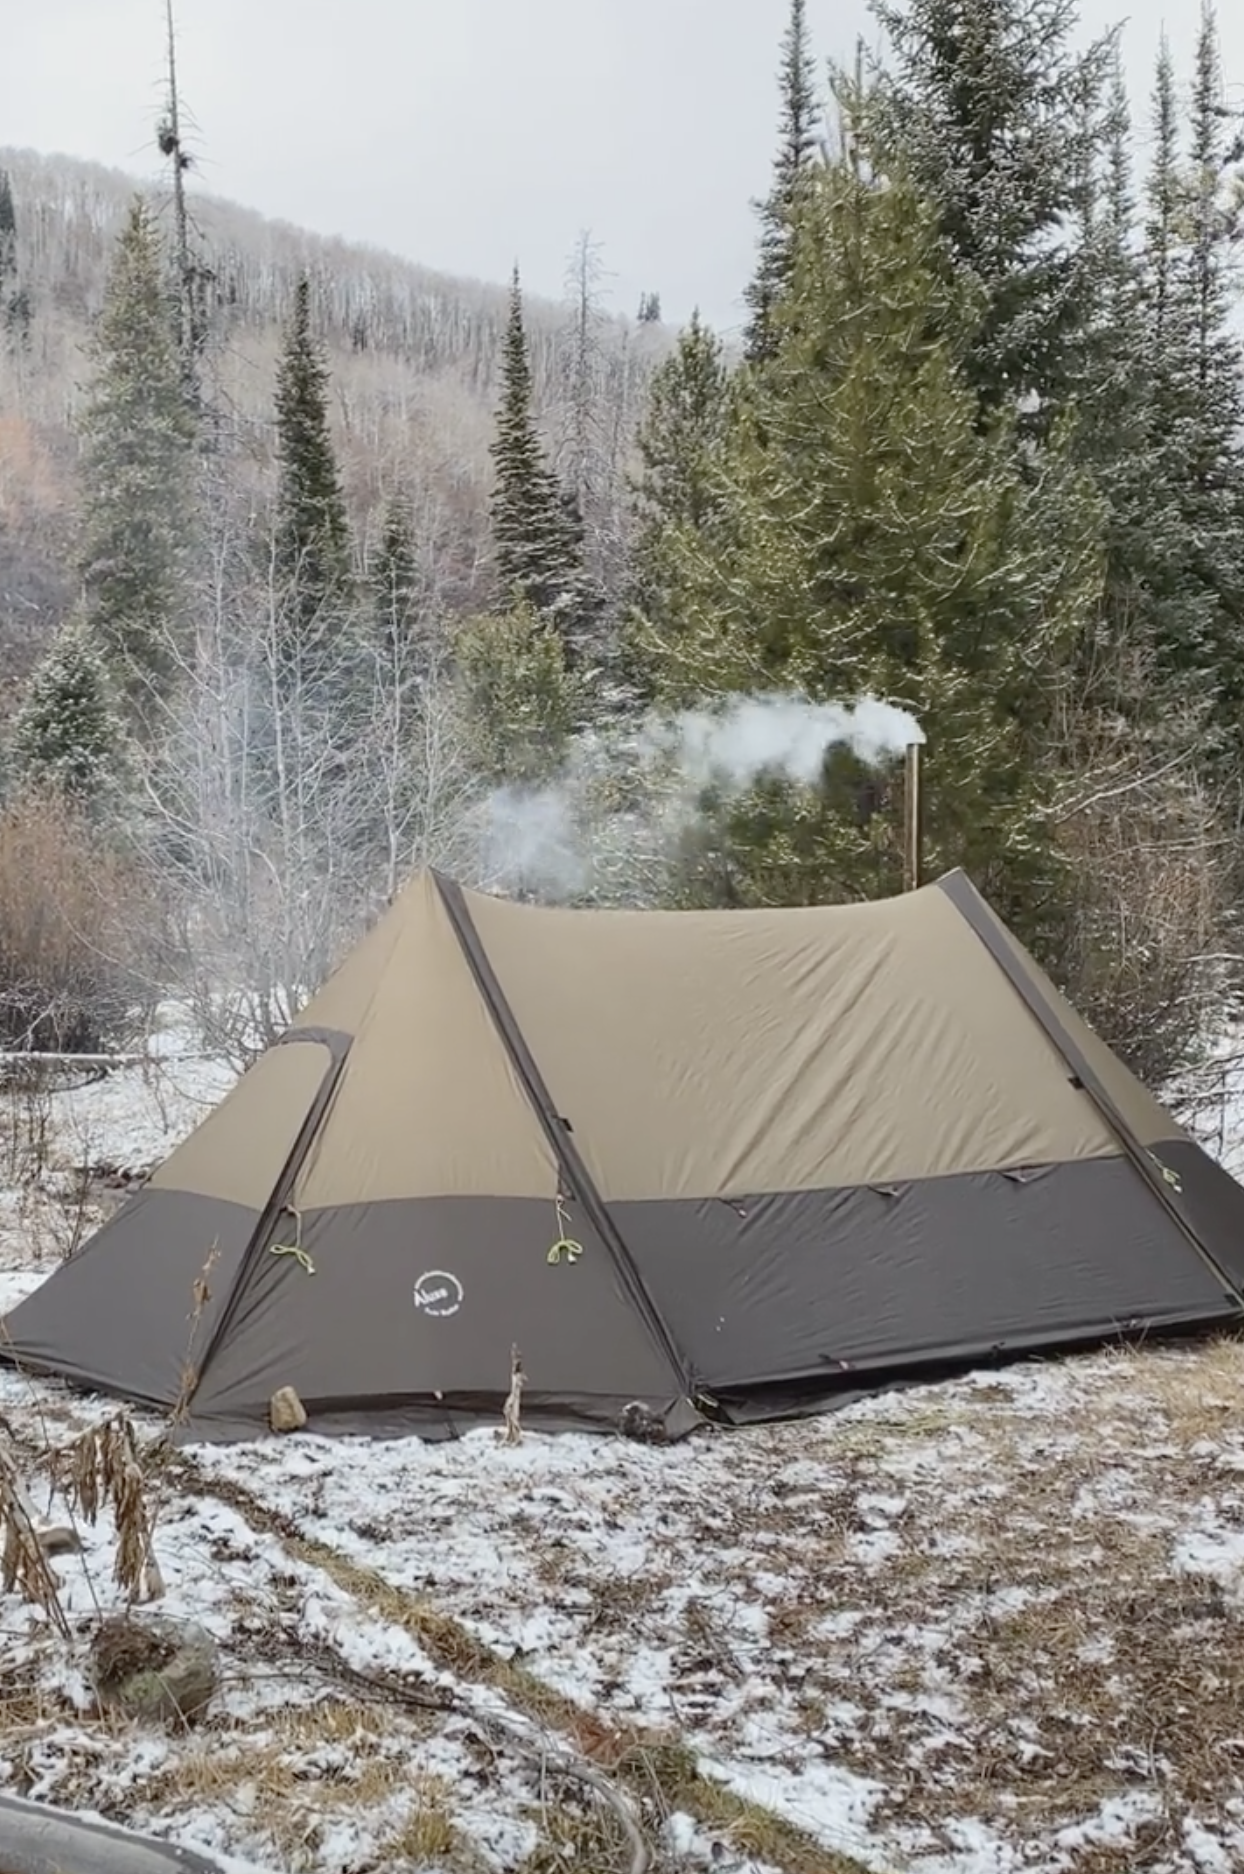 Twinpeak Awning Tent 5p With Wood Stove Jack Camping Shelters Outdoor Camping Outdoor